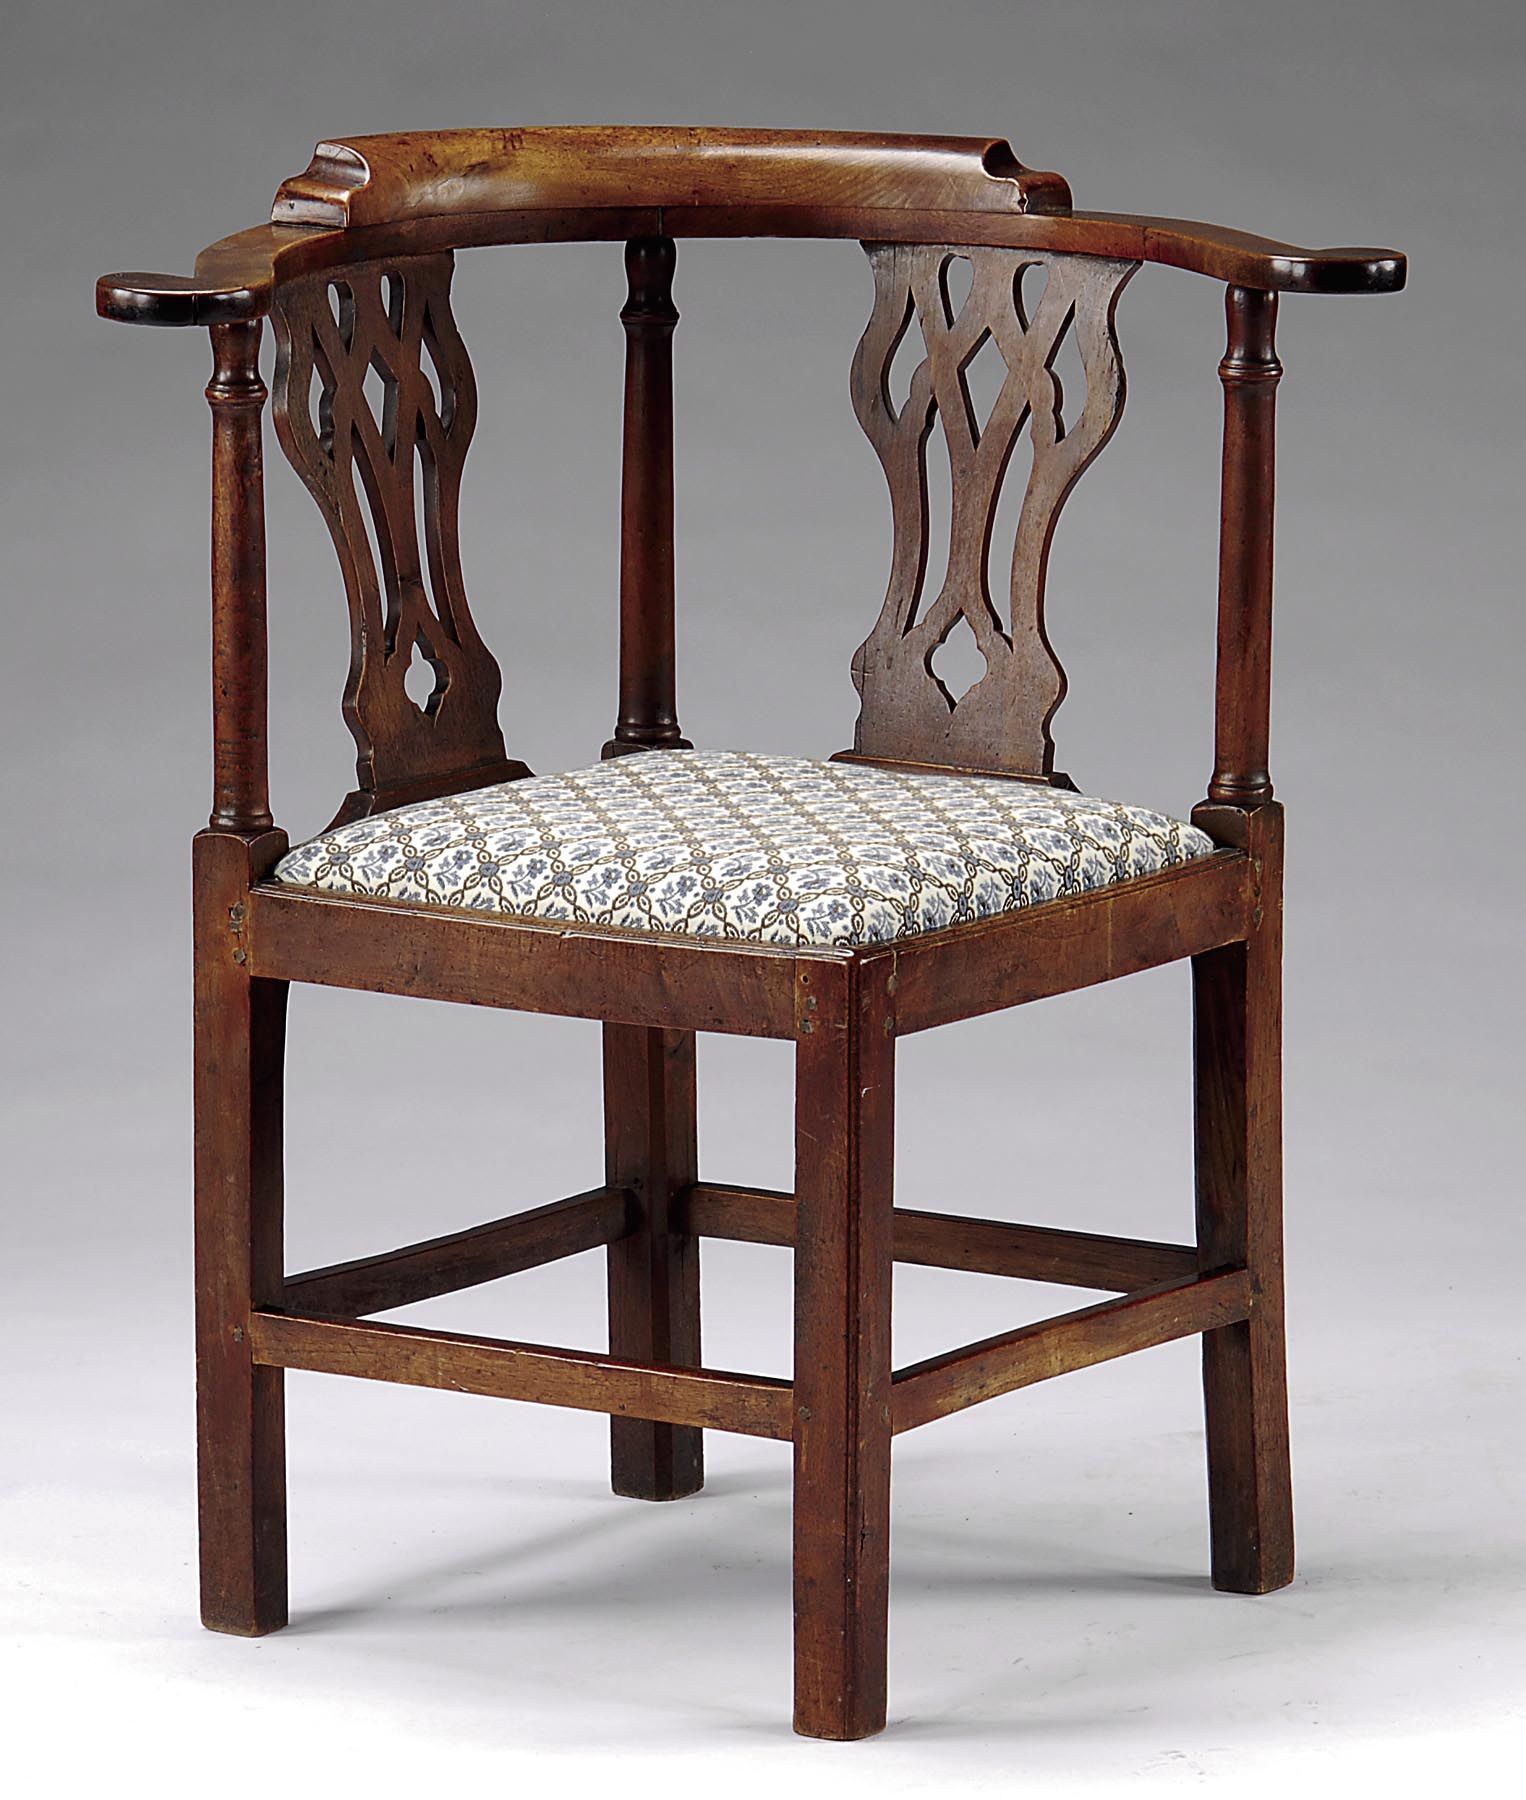 Superb 18th C American Walnut Chippendale Corner Chair Circa: 1760-1785  Original Surface - For Sale - Superb 18th C American Walnut Chippendale Corner Chair Circa: 1760